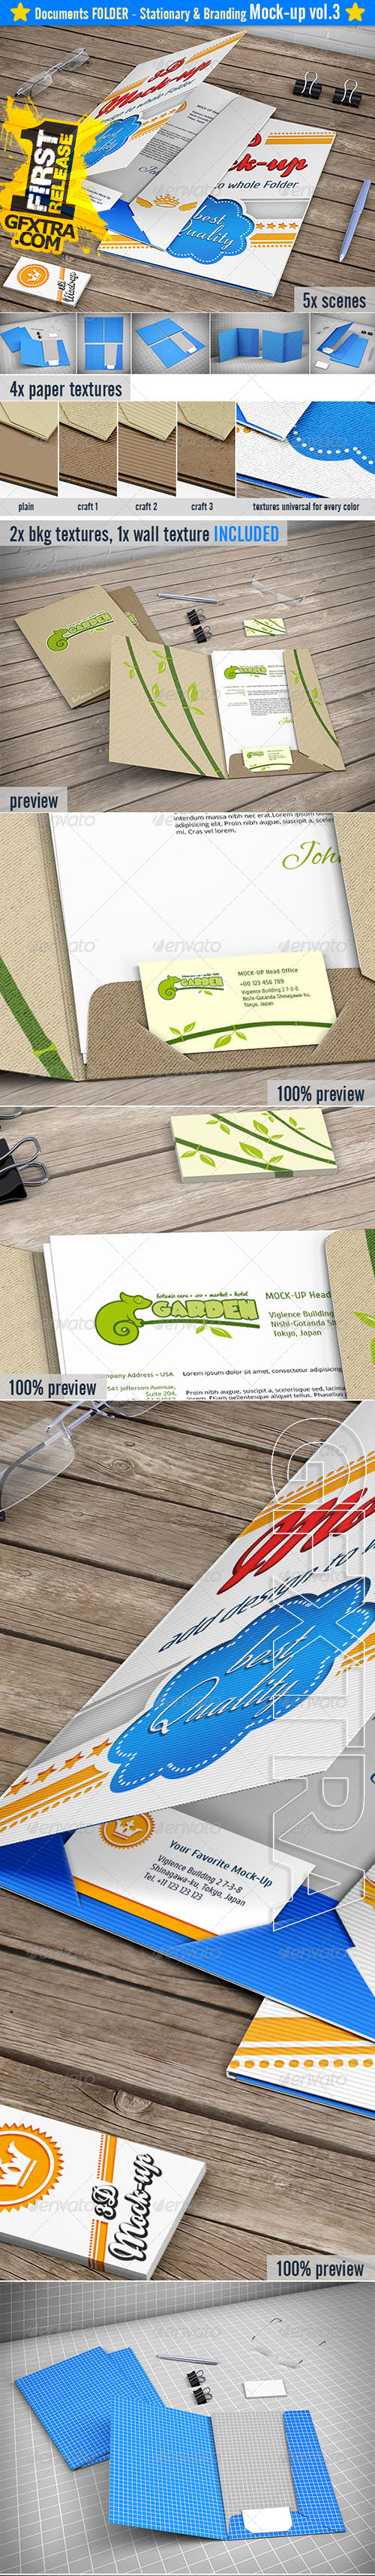 Graphicriver - Stationery / Branding Mock-up 8522228